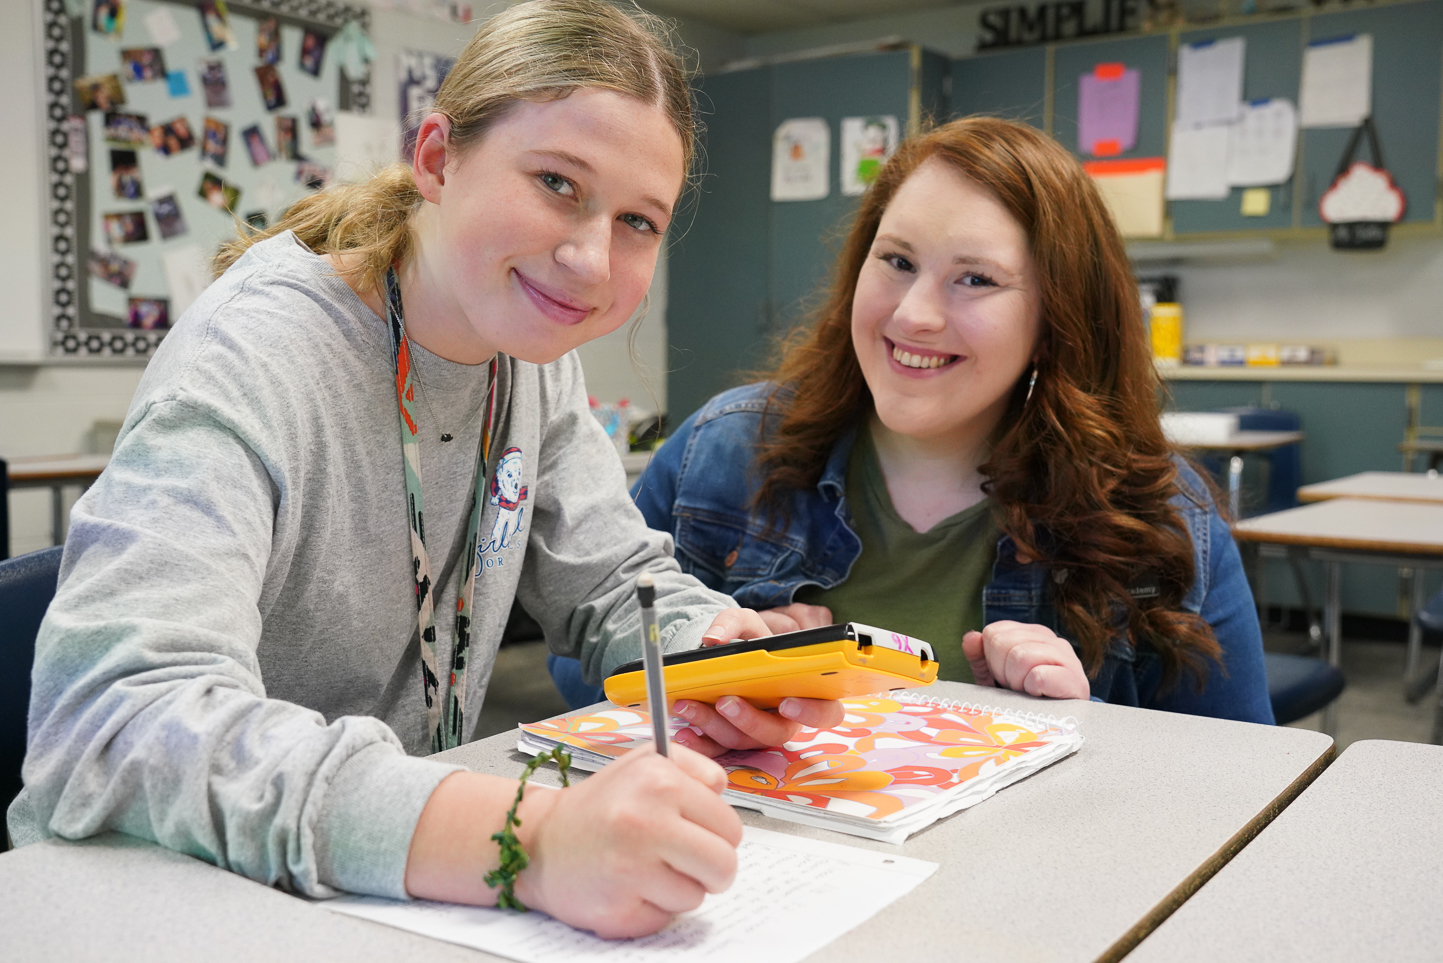 "Union High School Freshman Academy – Kelsey Fallis, Math Math teacher Kelsey Fallis has been named 2019-2020 Teacher of the Year for the Union High School Freshman Academy. She has been with Union since 2015. ""As long as I can remember, I have always wanted to be a teacher,"" Fallis said. ""While growing up, I was inspired by several teachers. One of those inspirational teachers was while I was in middle school. She was one of those teachers who went above and beyond to build a trusting relationship with me. Every day, she met with me making sure that I understood my school assignments. Every day she also was encouraging me to do my best. She made me feel special.  While I was attending high school, I got pregnant with my son. As a soon to be parent, many teachers I encountered were very discouraging. These were the kind of teachers who gave up on students like me. As I fought to stay in school, I quickly learned that I needed support and guidance from educators. I came to realize that my son was going to depend on me and I needed to succeed for my son. As I navigated through my sophomore year of high school, I found teachers who would support me. They supported me because I would not allow my situation to be an excuse.  ""Those teachers who invested in me, taught me a valuable lesson when I became an educator. Investing in your students and building a relationship with them creates a student willing to learn. The students will say they are fine and won't admit they need help, but they do. When you invest in them, they become learners. I want all my students to become learners and feel like they are someone special. Invested teachers taught me how to succeed and I want to do the same for my students."" Her favorite subject is math.  ""Math is fascinating and math is life,"" Fallis said. ""Everything we do in the world is mathematical.  ""Every August, students dread walking into my classroom. They have entered the classroom thinking that they are going to fail math because its hard. They have a defeated attitude for one reason or another and they think that they will fail at math. When you engage students, build relationships with them, you can show them that math is something they can learn and not fear. I love to change their mindset from the 'I can't' to the 'I can' succeed at math.""  Fallis earned her bachelor's in mathematical education degree from Northeastern State University. She obtained her teaching certificate in advanced mathematics."